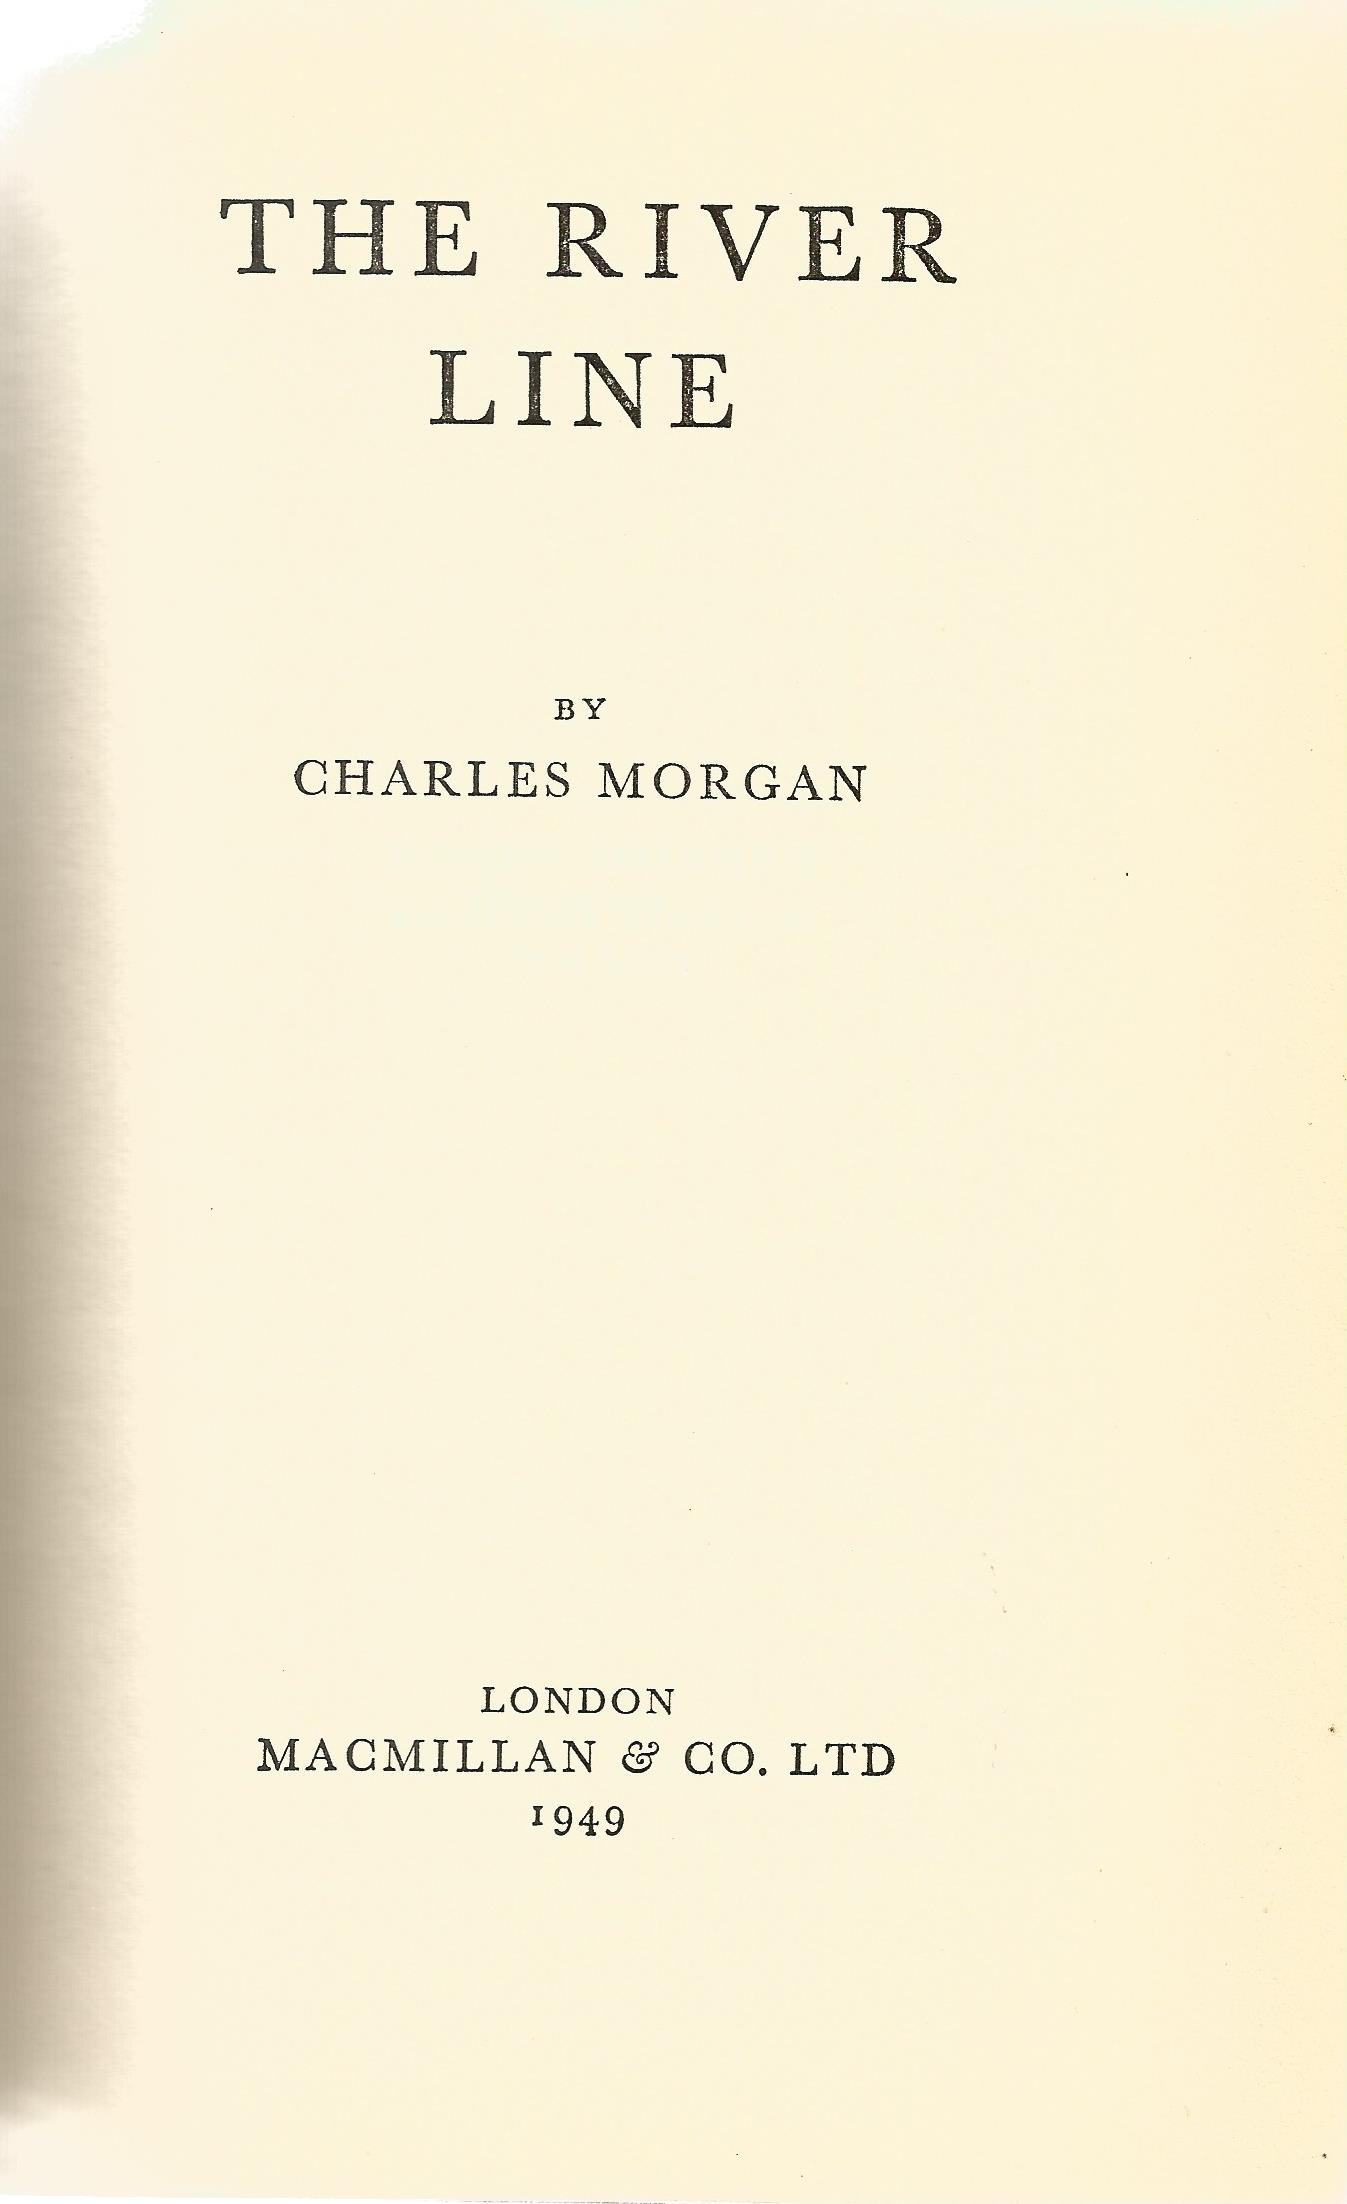 Signed Hardback Book The River Line by Charles Morgan First Edition 1949 published by Macmillan & Co - Image 2 of 3